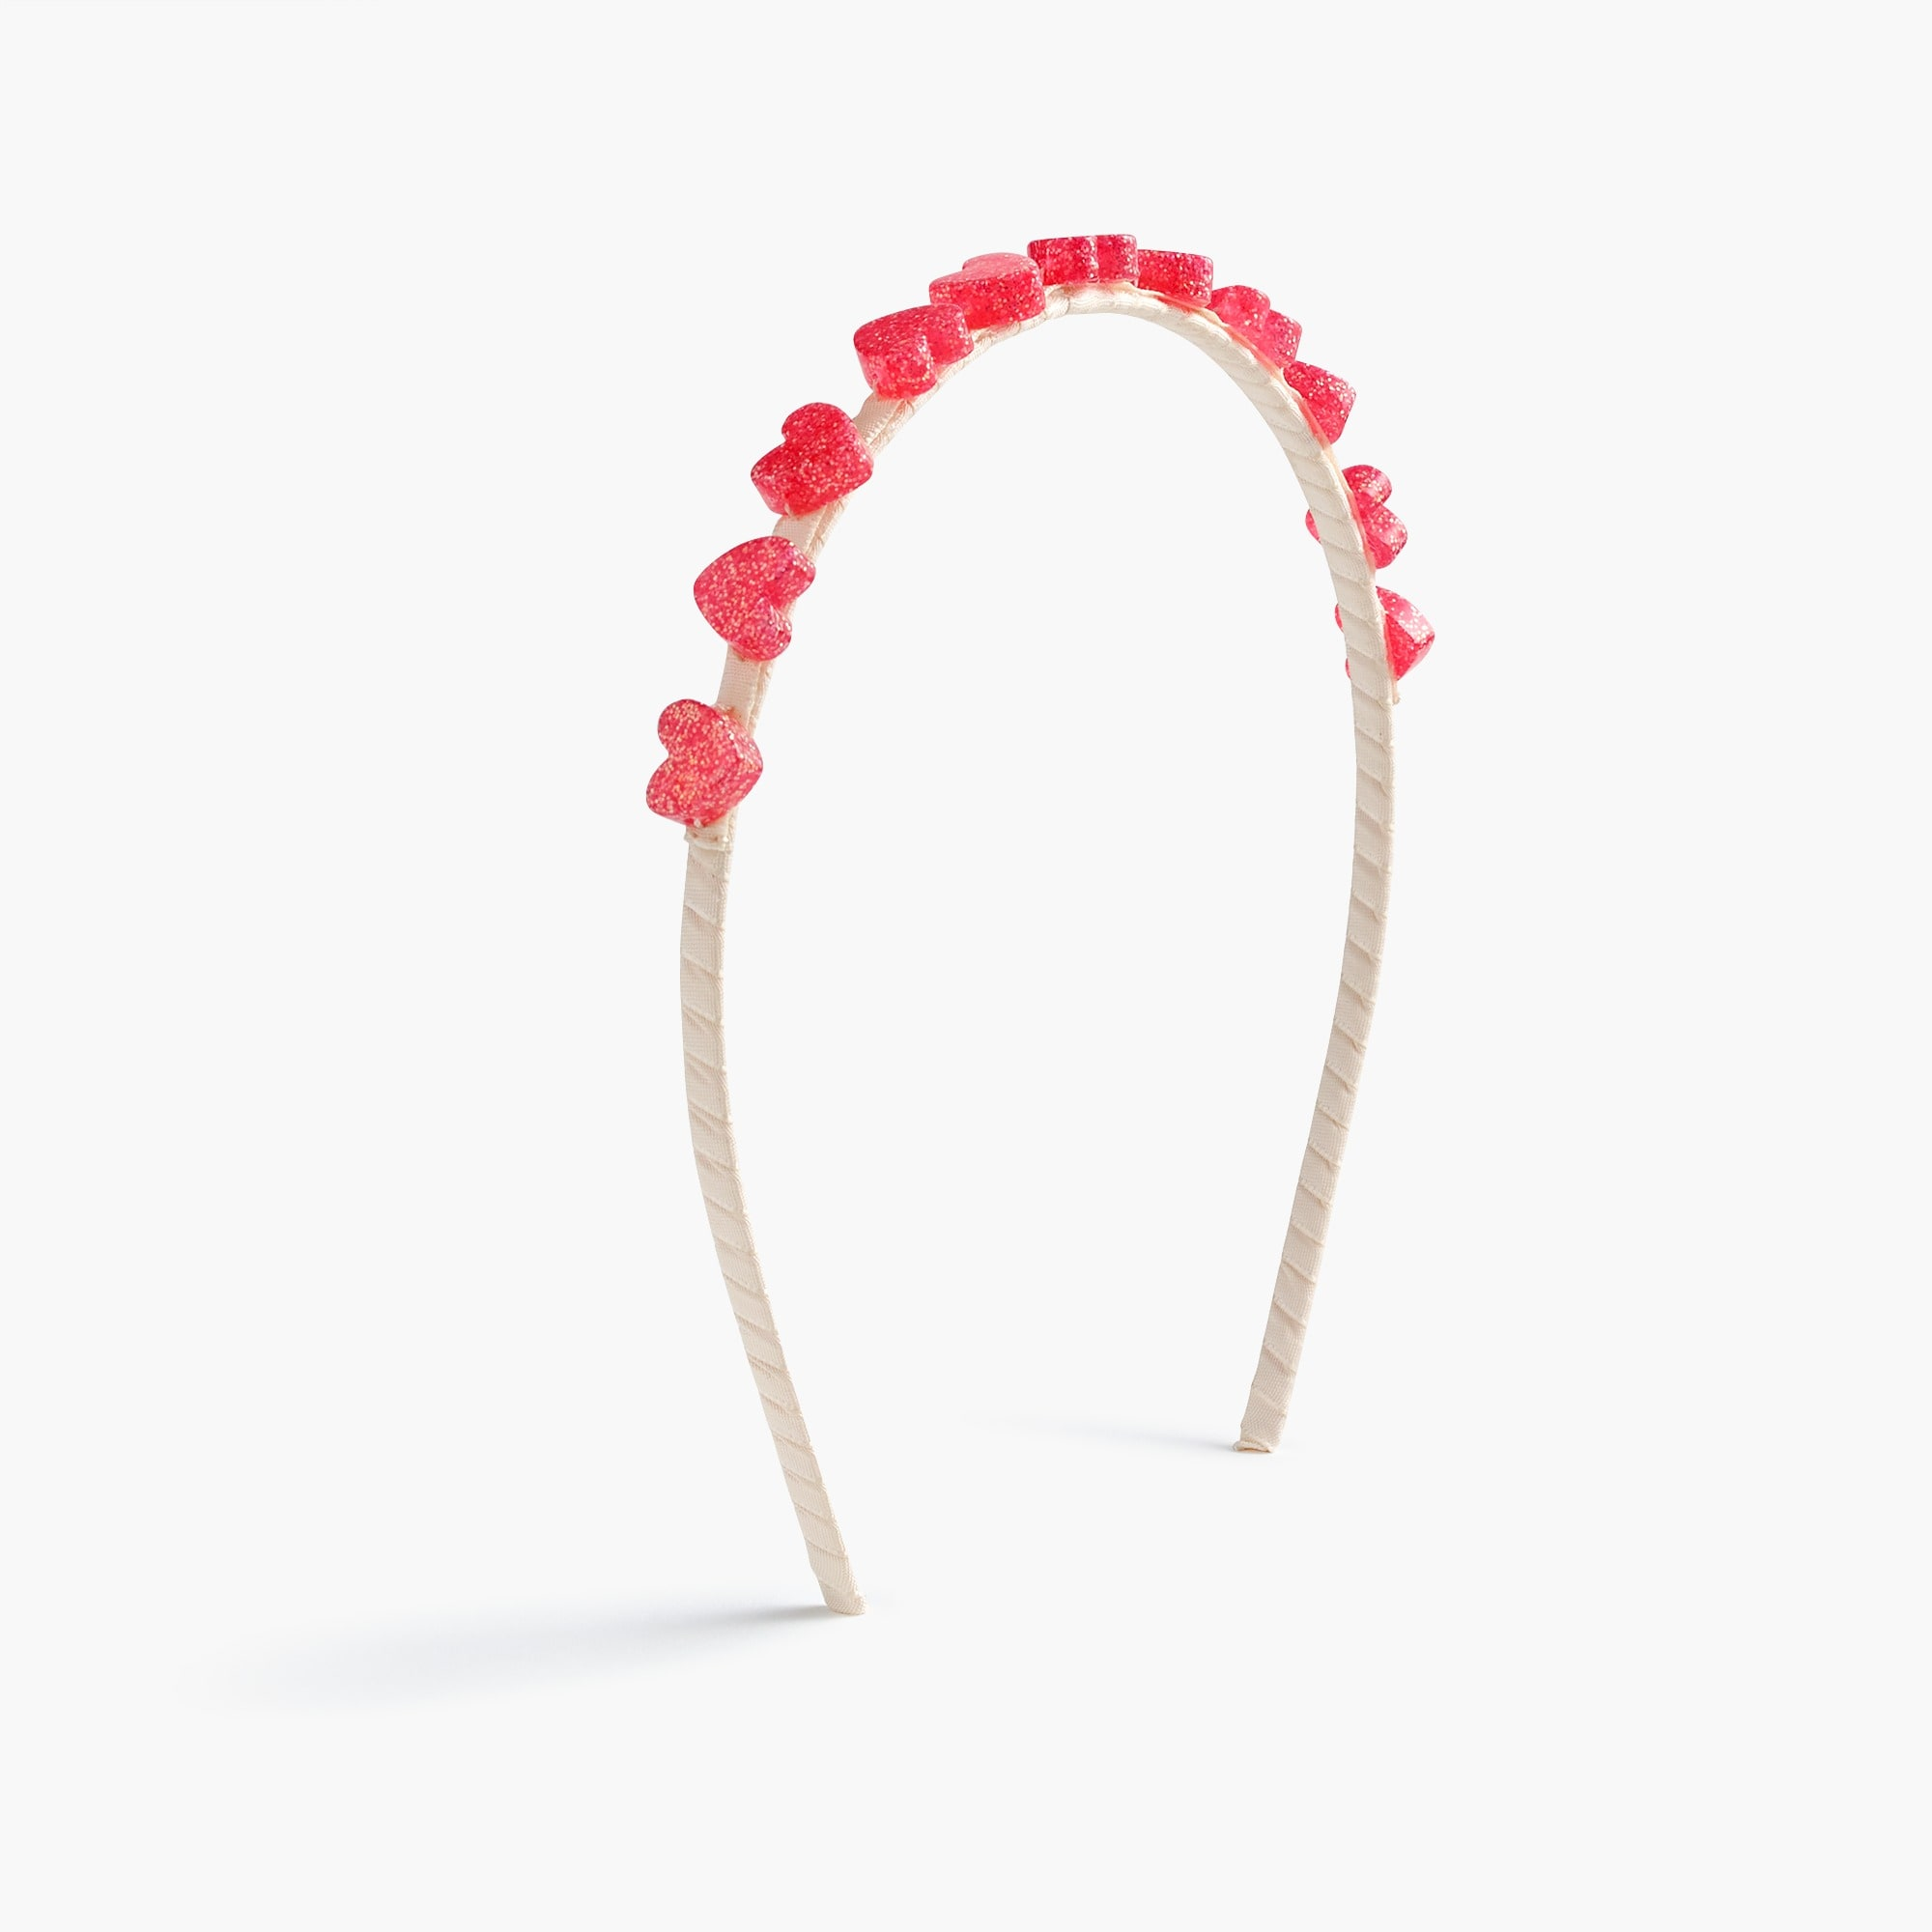 Girls' strawberry headband girl jewelry & accessories c